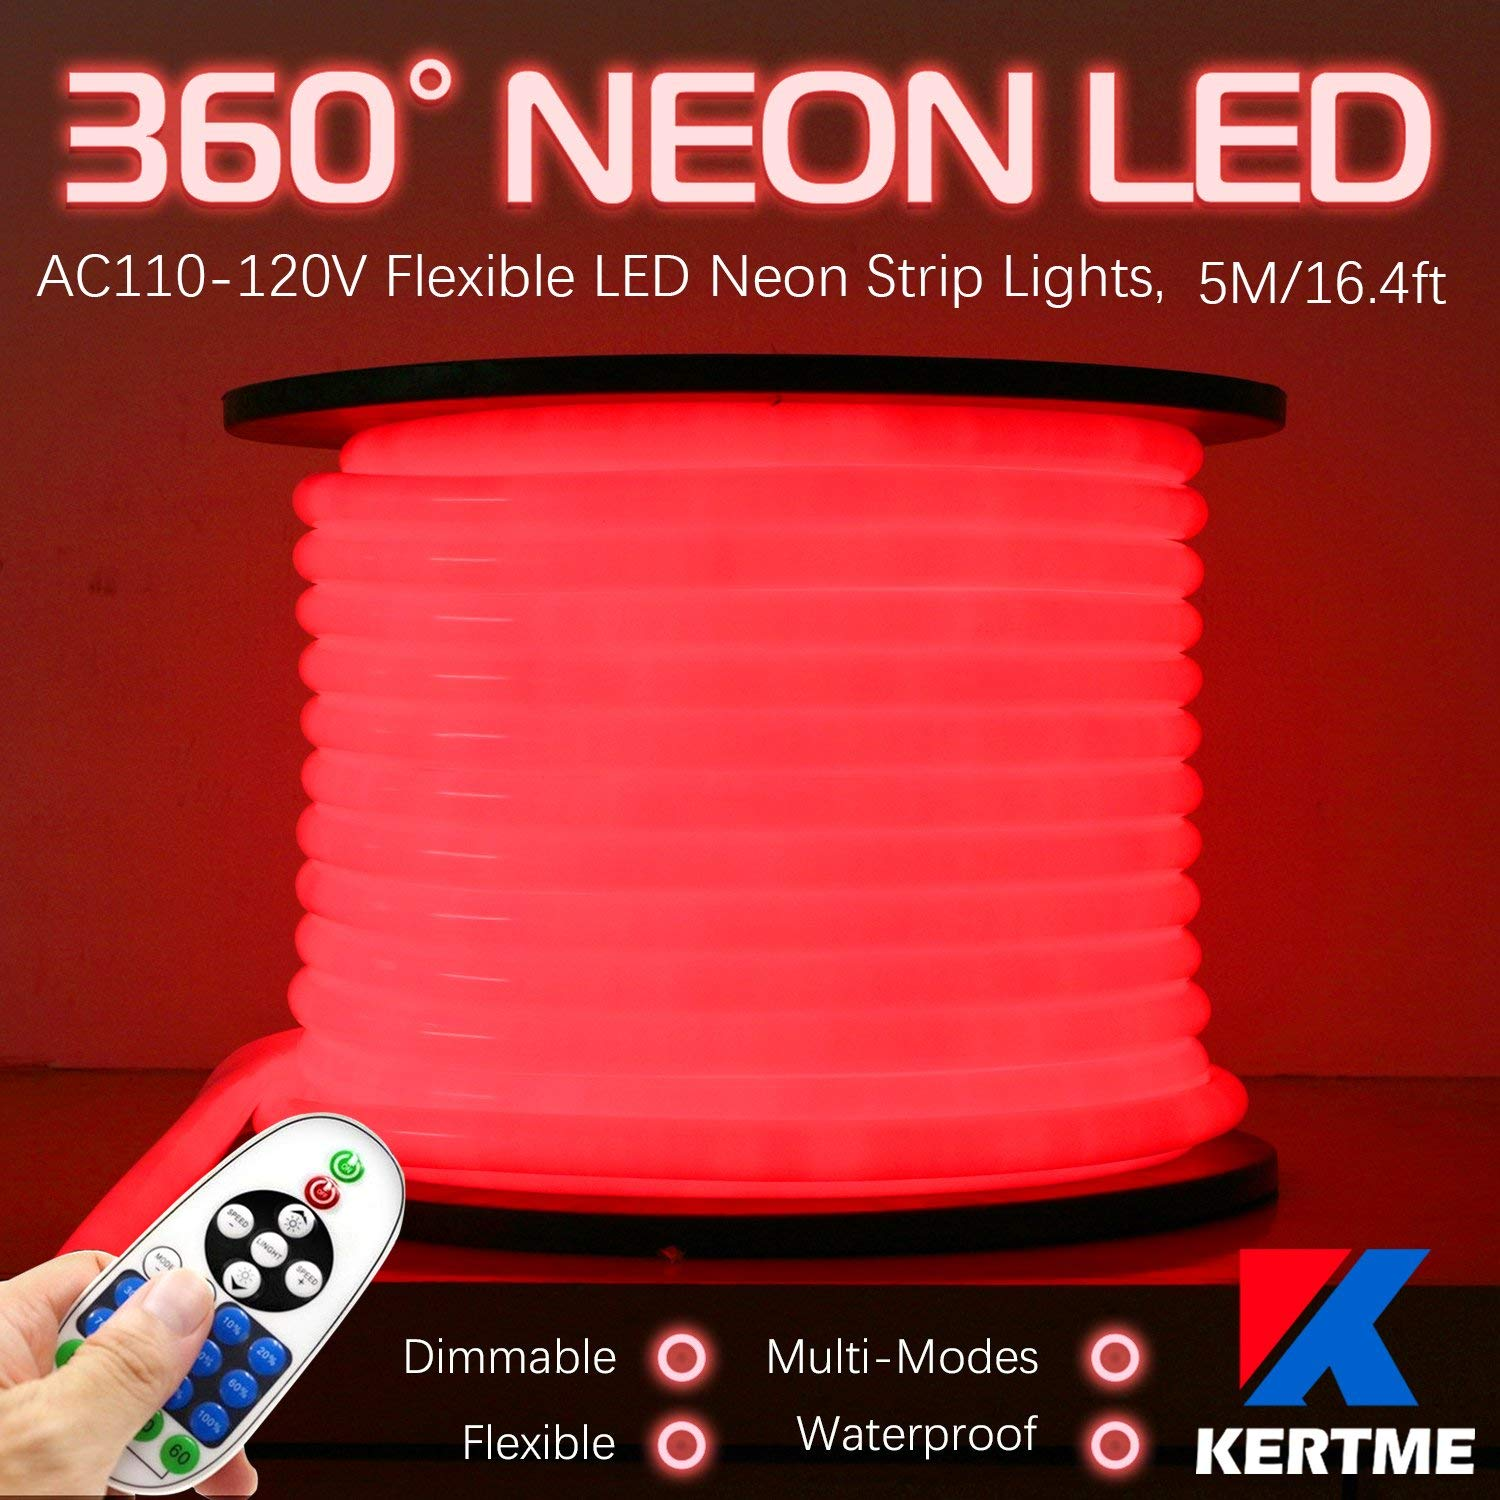 KERTME 360° Neon Led Type AC 110-120V 360 Degree NEON LED Light Strip, Flexible/Waterproof/Dimmable/Multi-Modes LED Rope Light + Remote for Home/Garden/Building Decor (16.4ft/5m, Red)